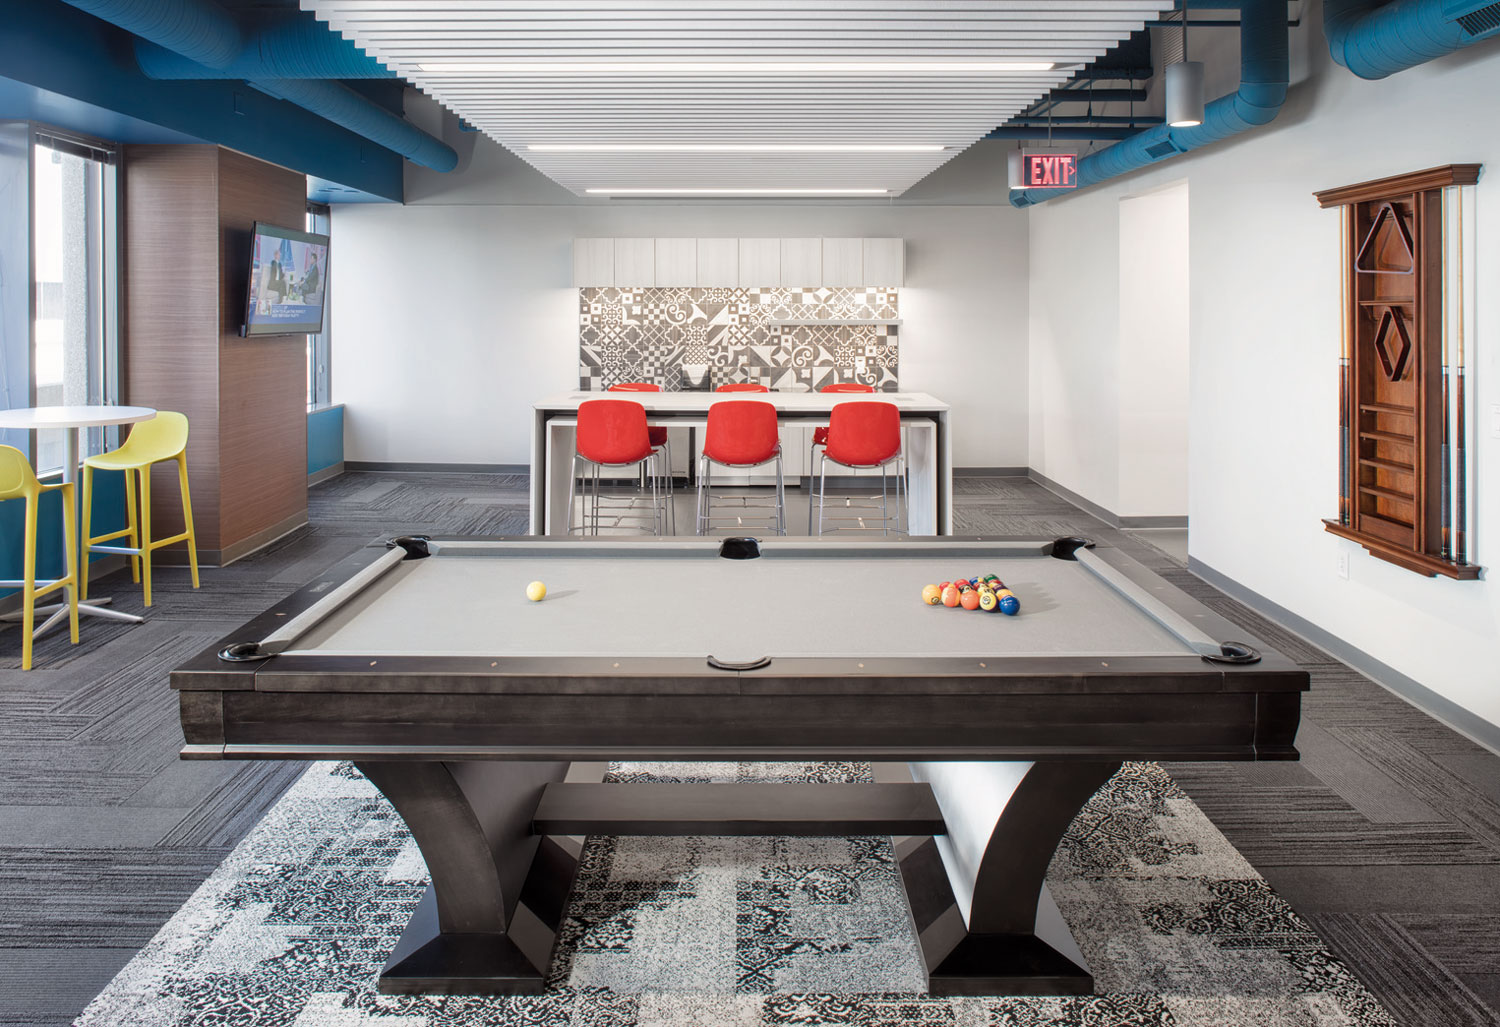 A completely reimagined tenant lounge